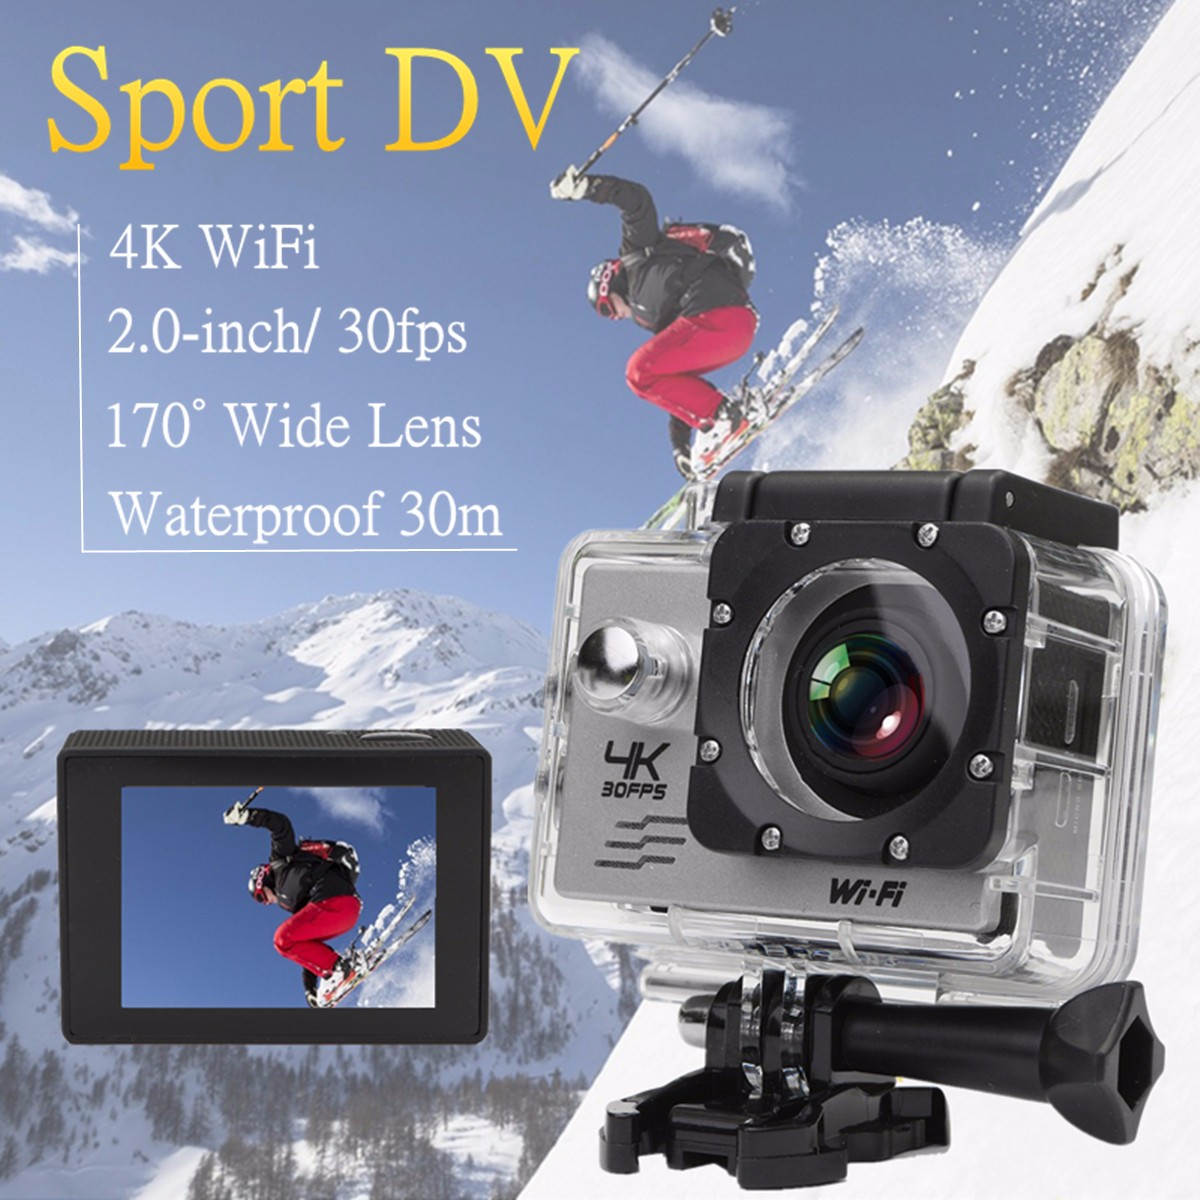 KINCO High Quality HD <font><b>4K</b></font> 1080P 16MP WiFi 170° Underwater Waterproof Sports Action Video DV <font><b>Camera</b></font> Sport Cam <font><b>Mini</b></font> Camcorders image